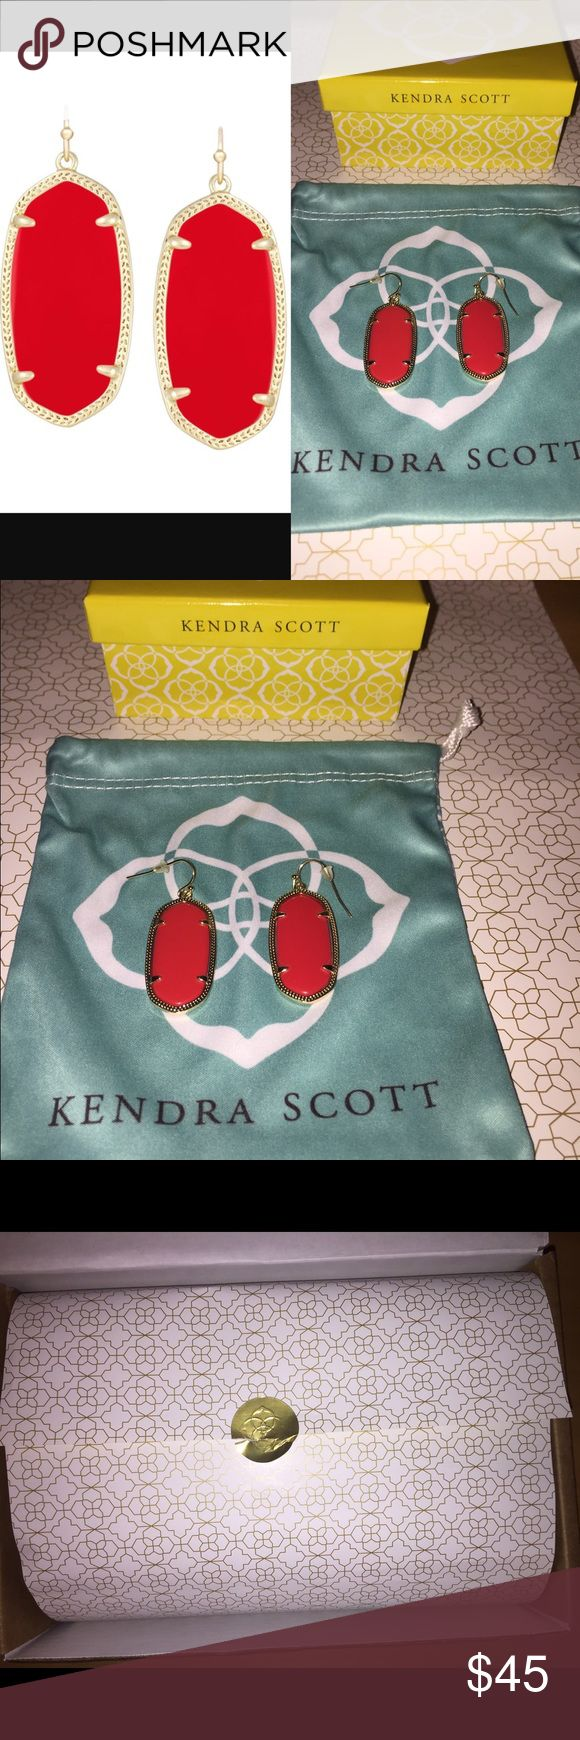 Kendra Scott Elle Earrings In Bright Red Brand new but with out tags Kendra Scott Elle Earrings In Bright Red. Comes with Kendra Scott yellow gift box, jewelry dust bag, and blue ribbon. Originally ordered as gifts for a silent auction raffle. But decided to keep instead. As you can see from picture, I ordered these and they came beautifully packaged inside the yellow gift boxes. The only time the earrings were ever taken out of the dust bag, was to remove price tag before raffle & to take…